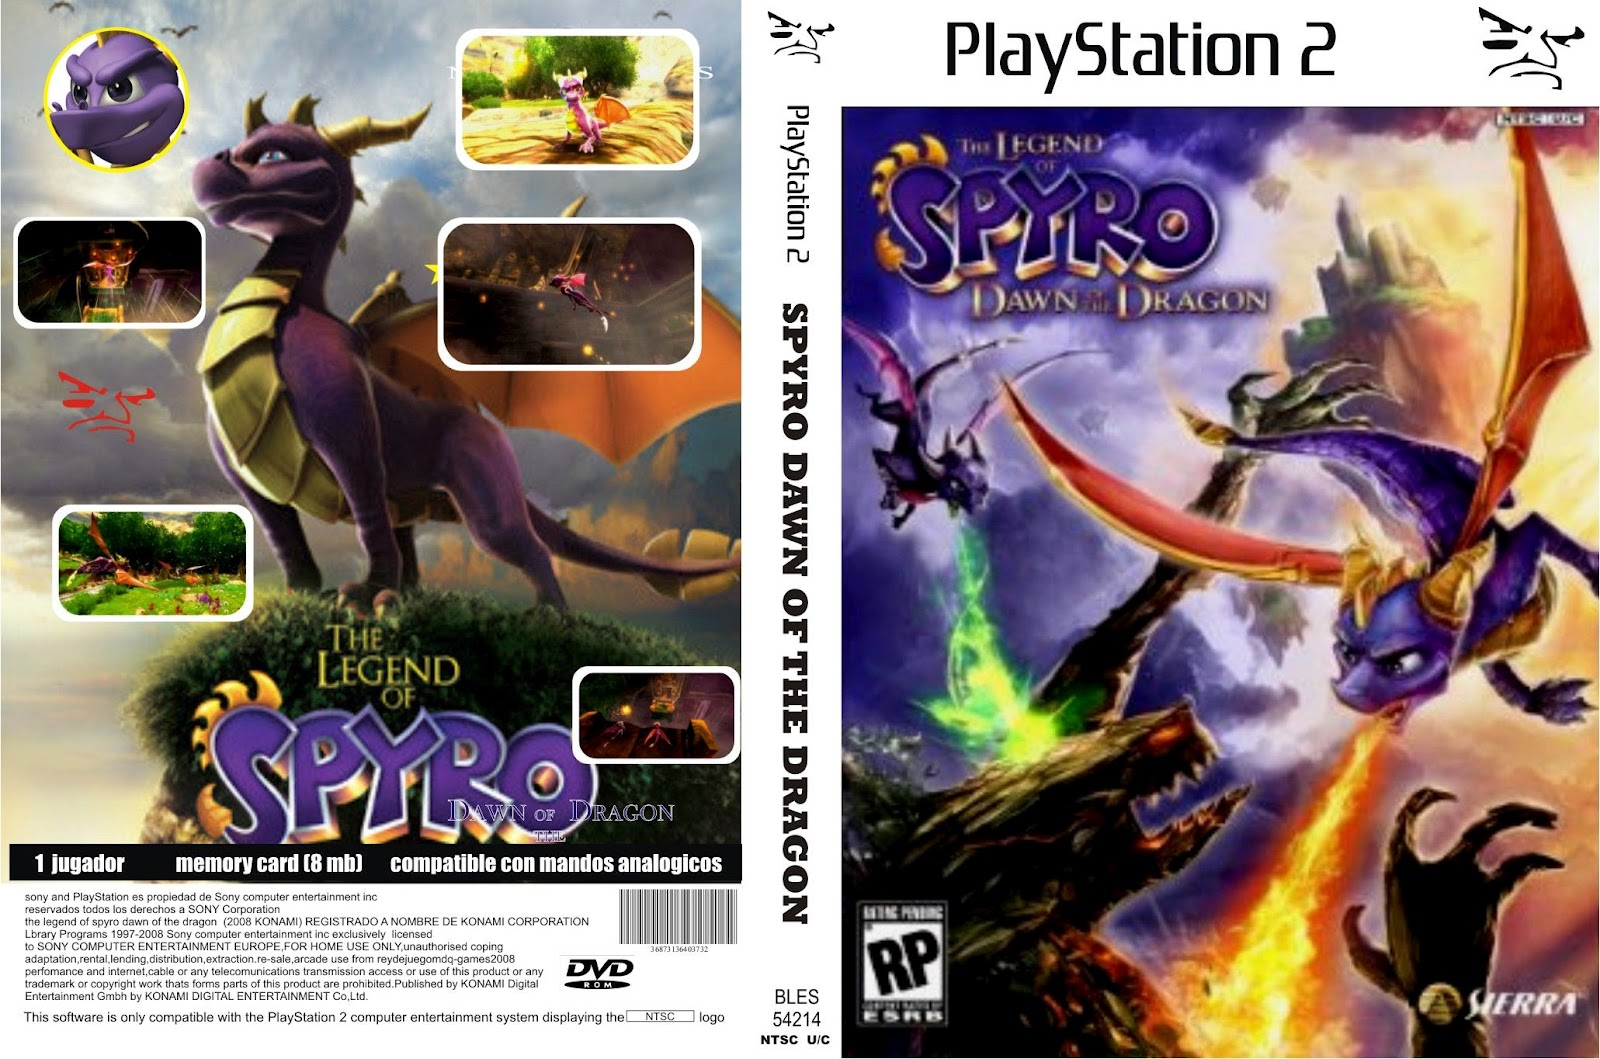 ... Of_Spyro_-_Dawn_Of_The_Dragon_-_Dvd_-_Custom_por_gatz_%5Bps2%5D_80.jpg